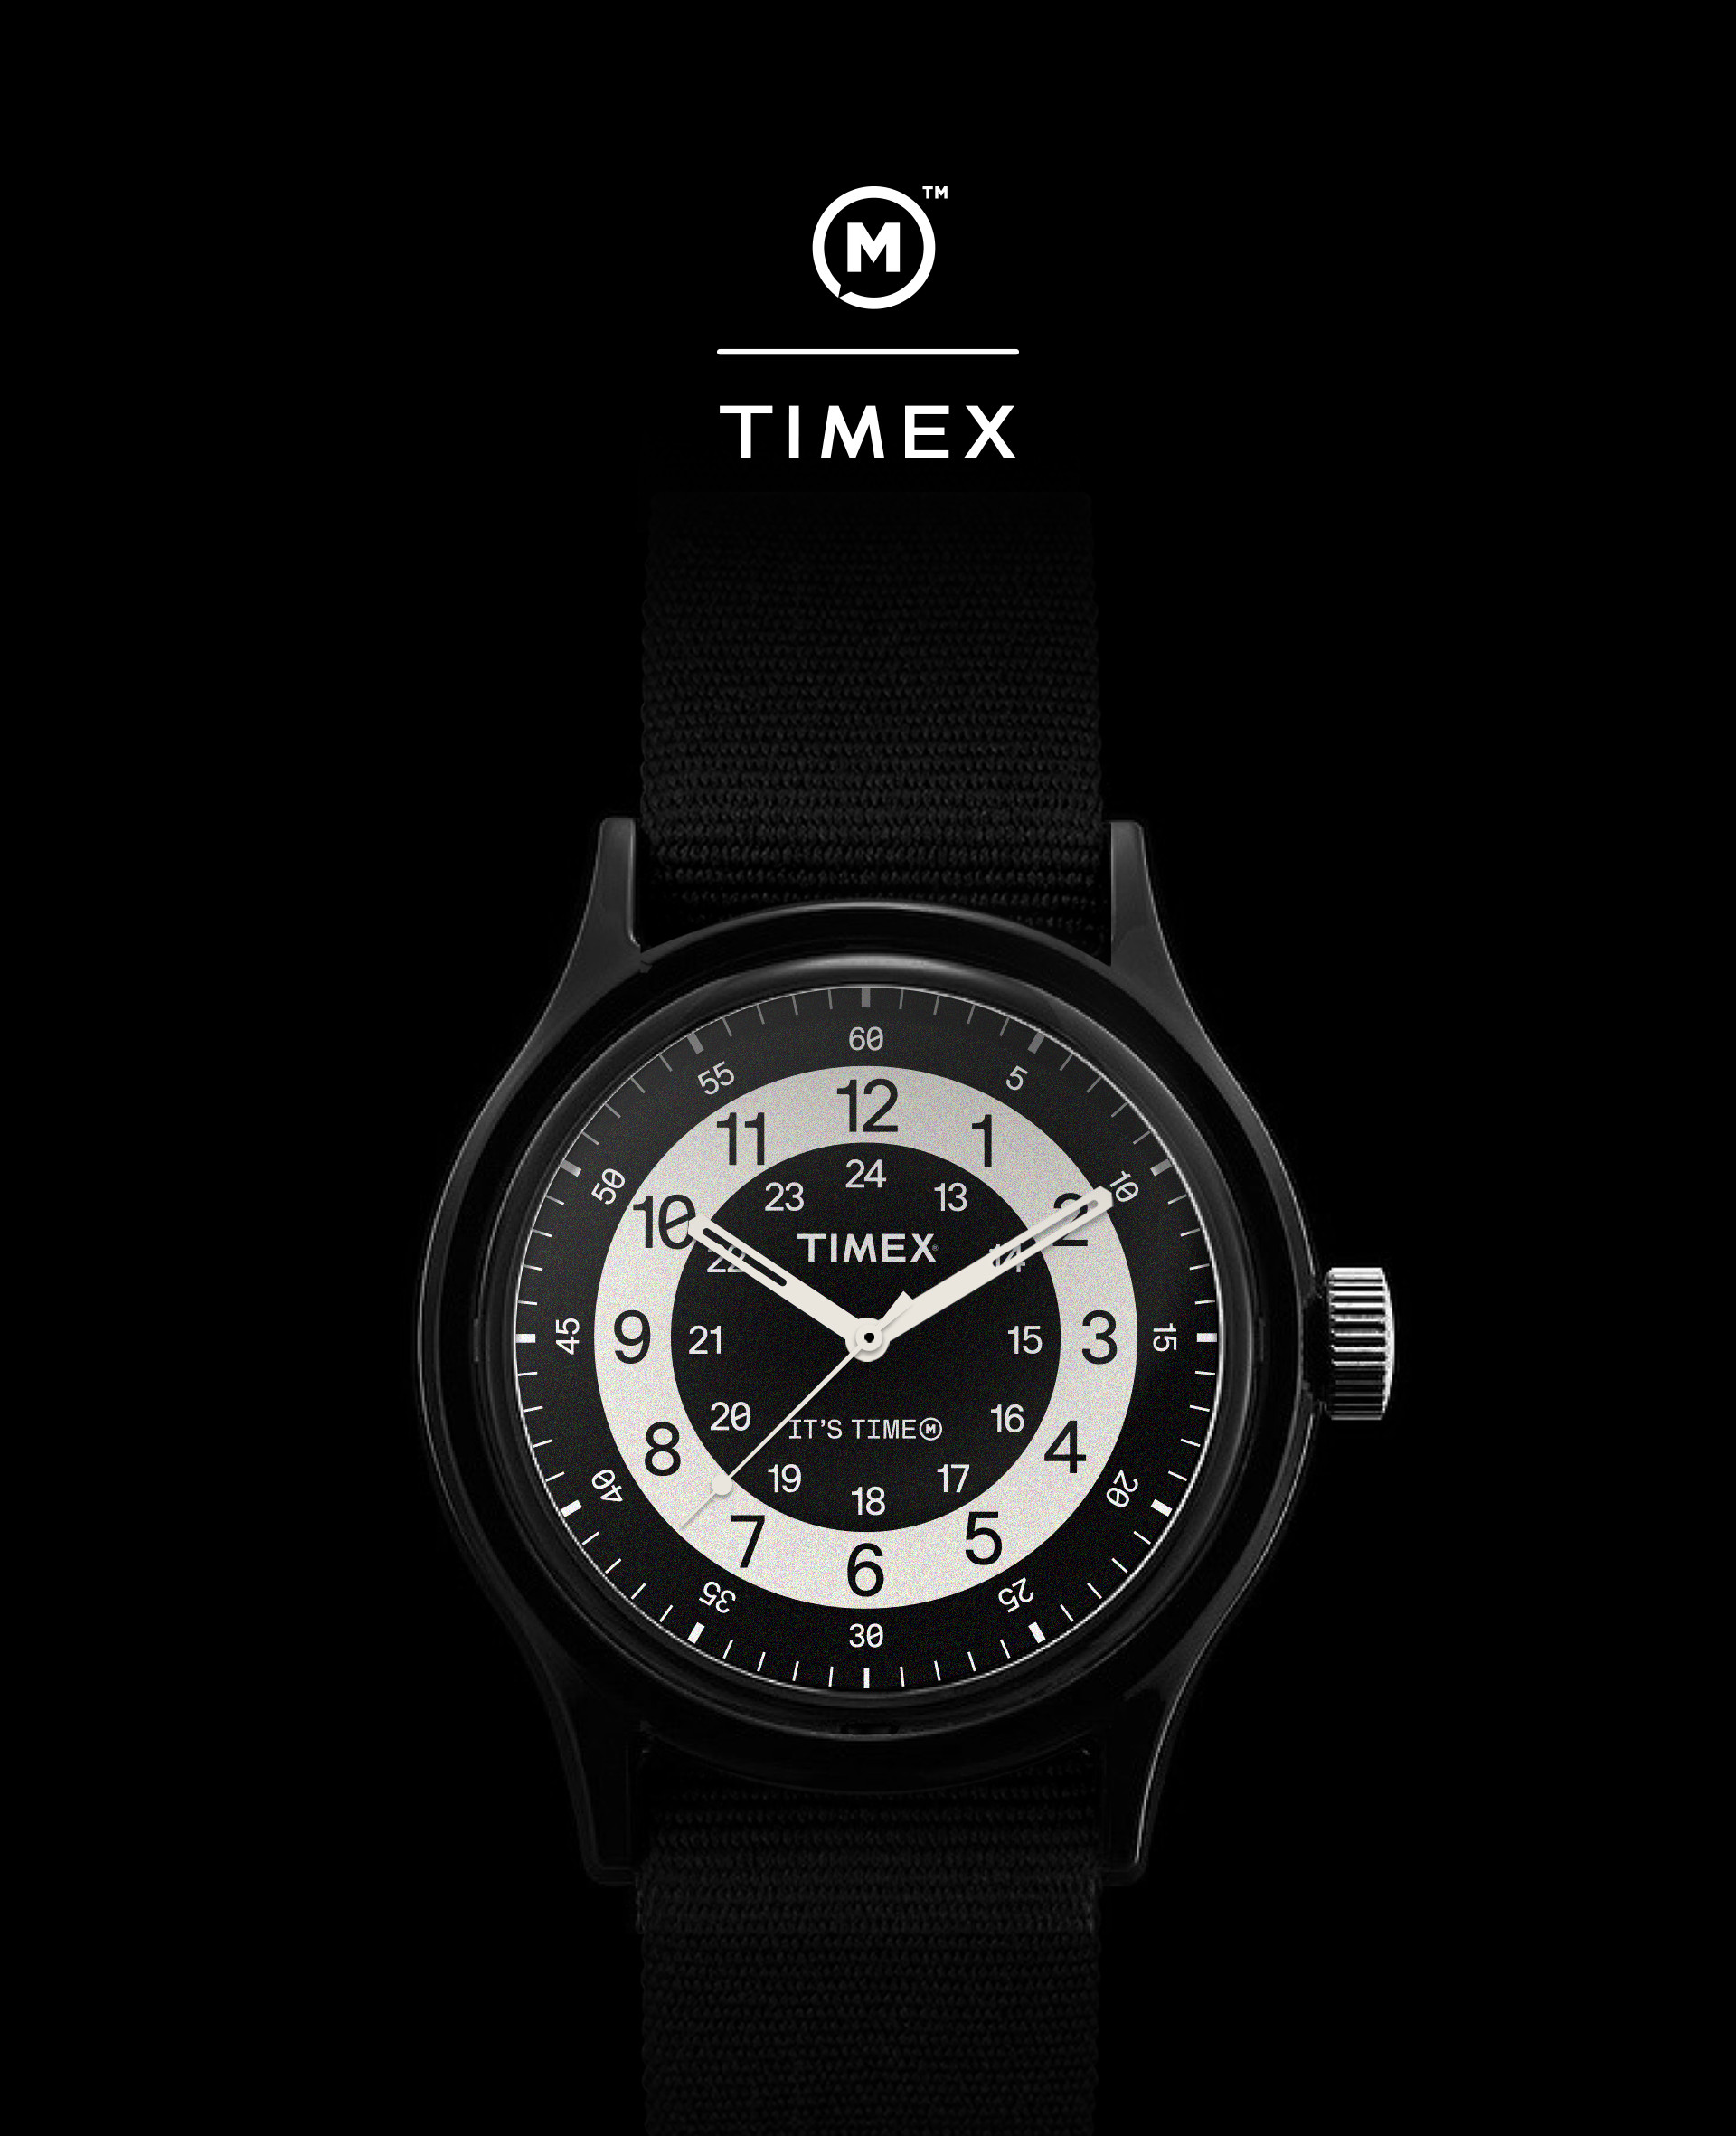 TIMEX WEBSITE MAKNA COVER.jpg